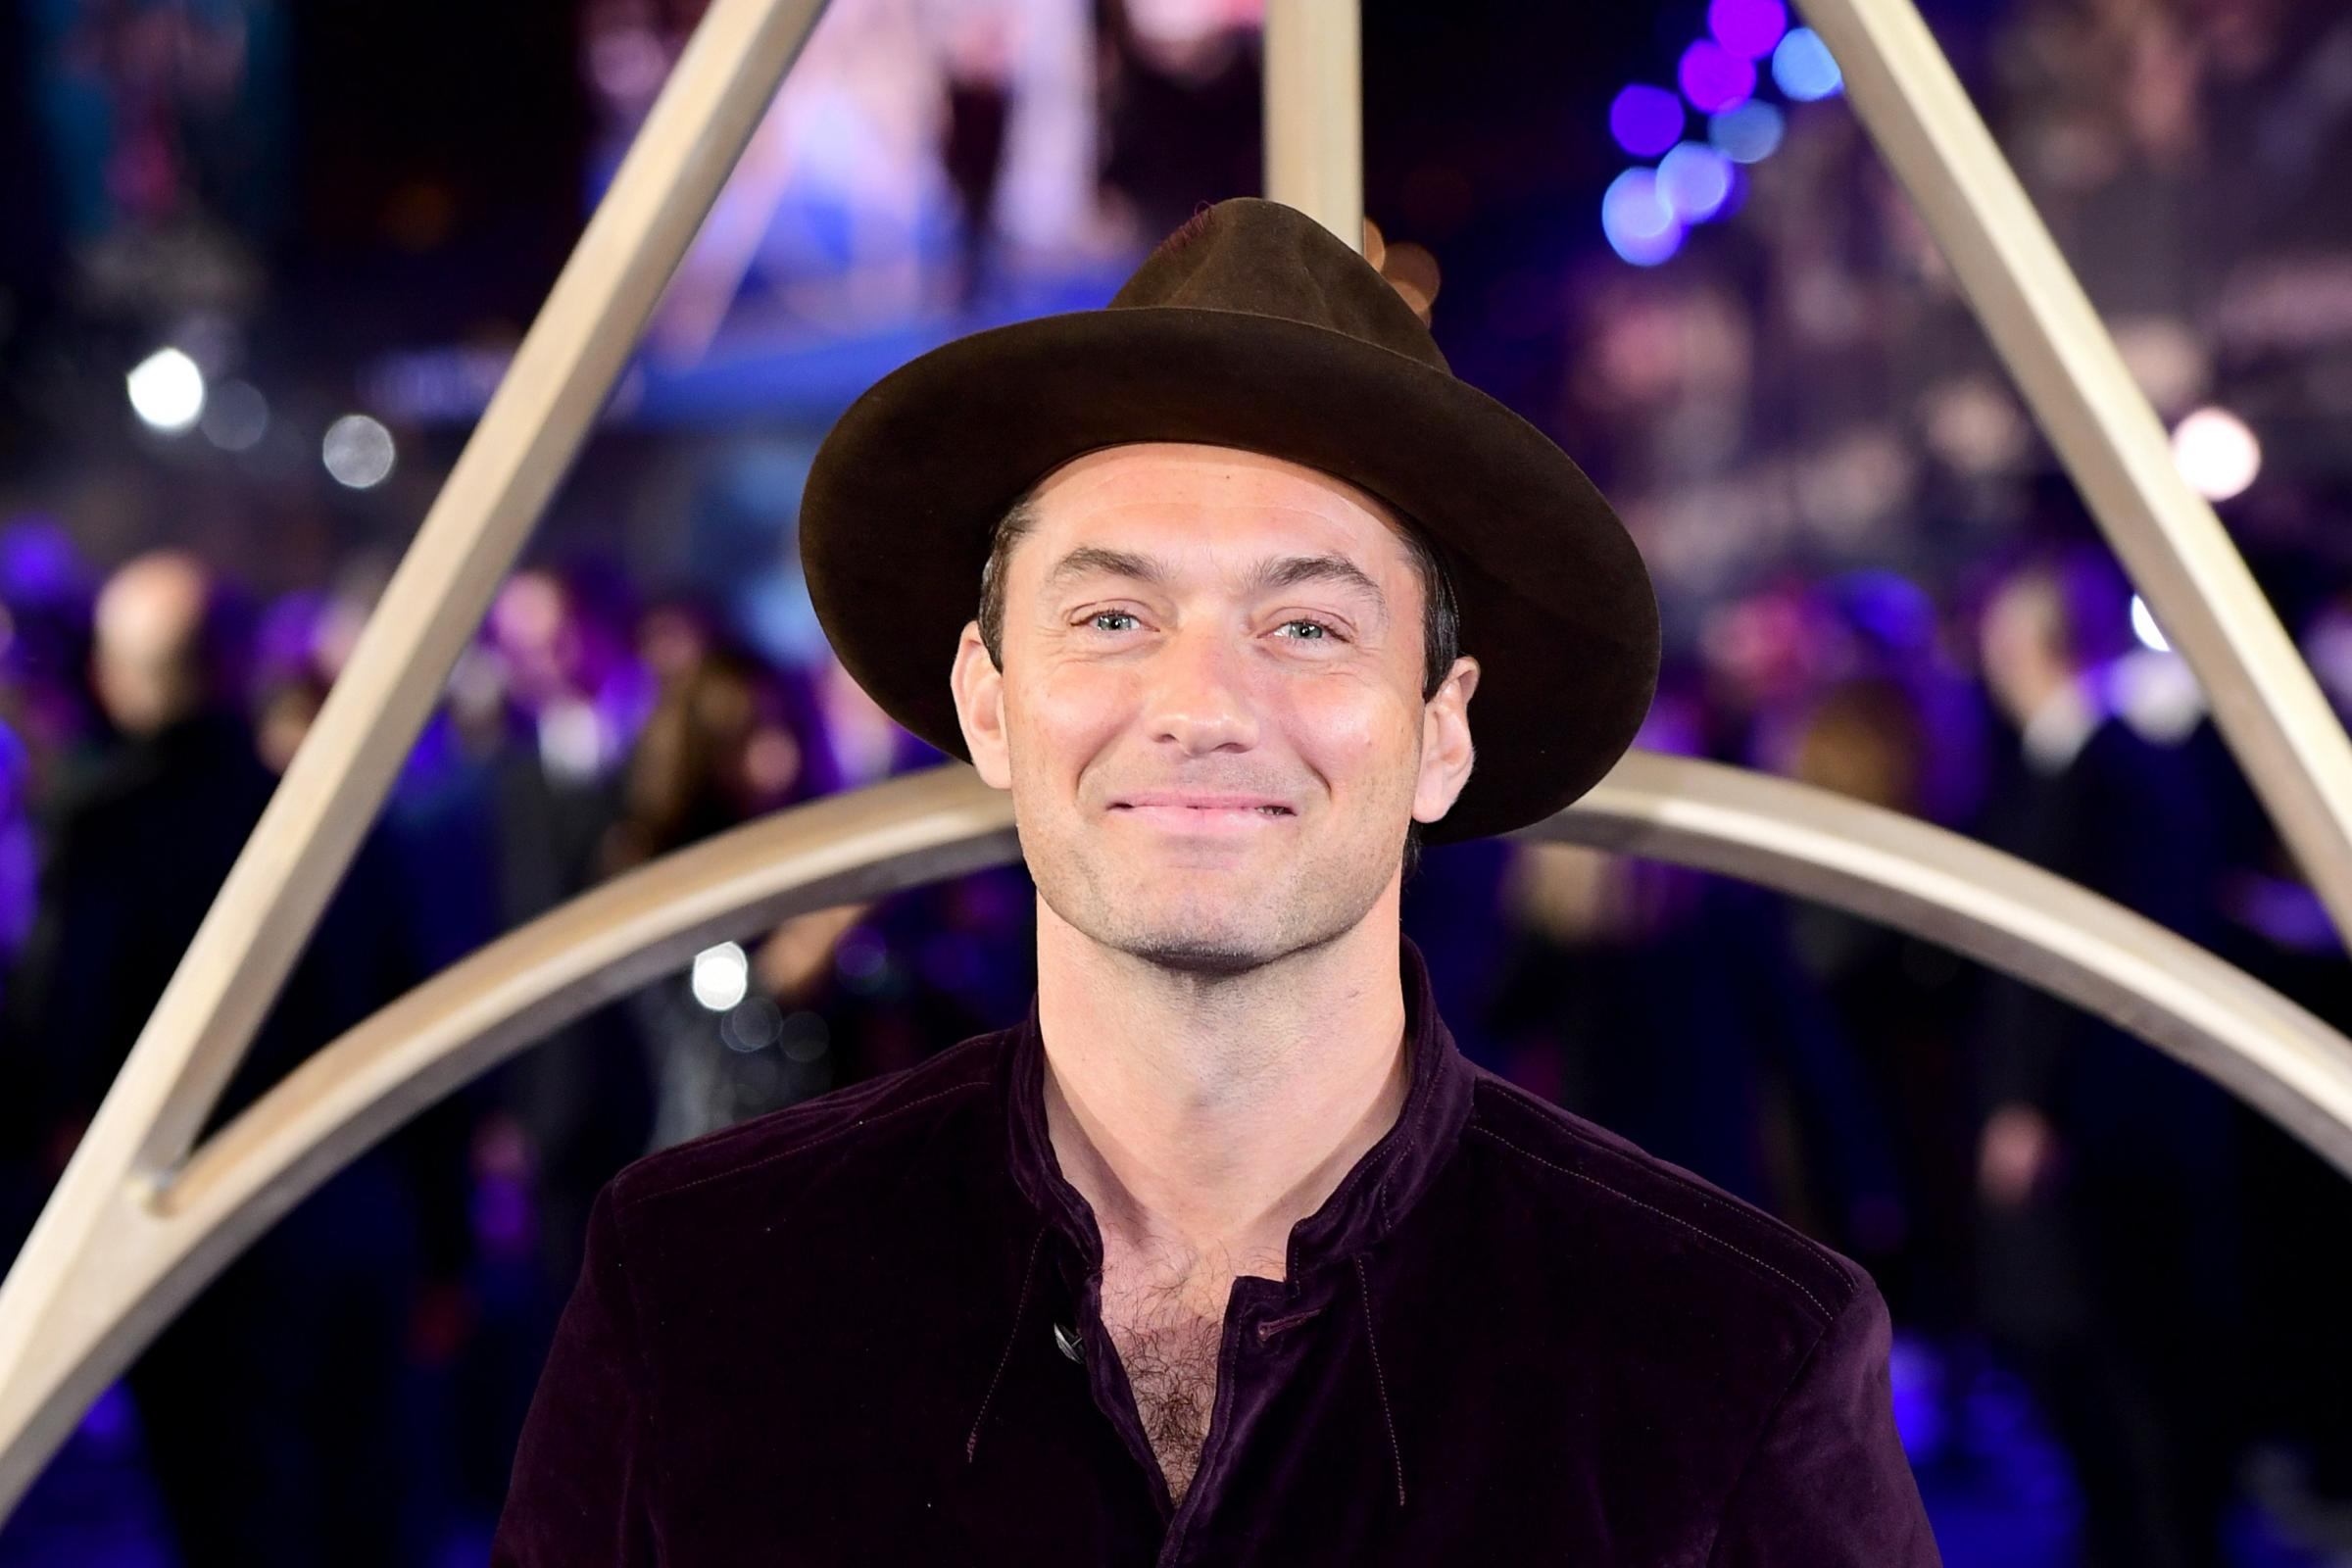 Jude Law 'stupid' not to realise significance of playing Dumbledore